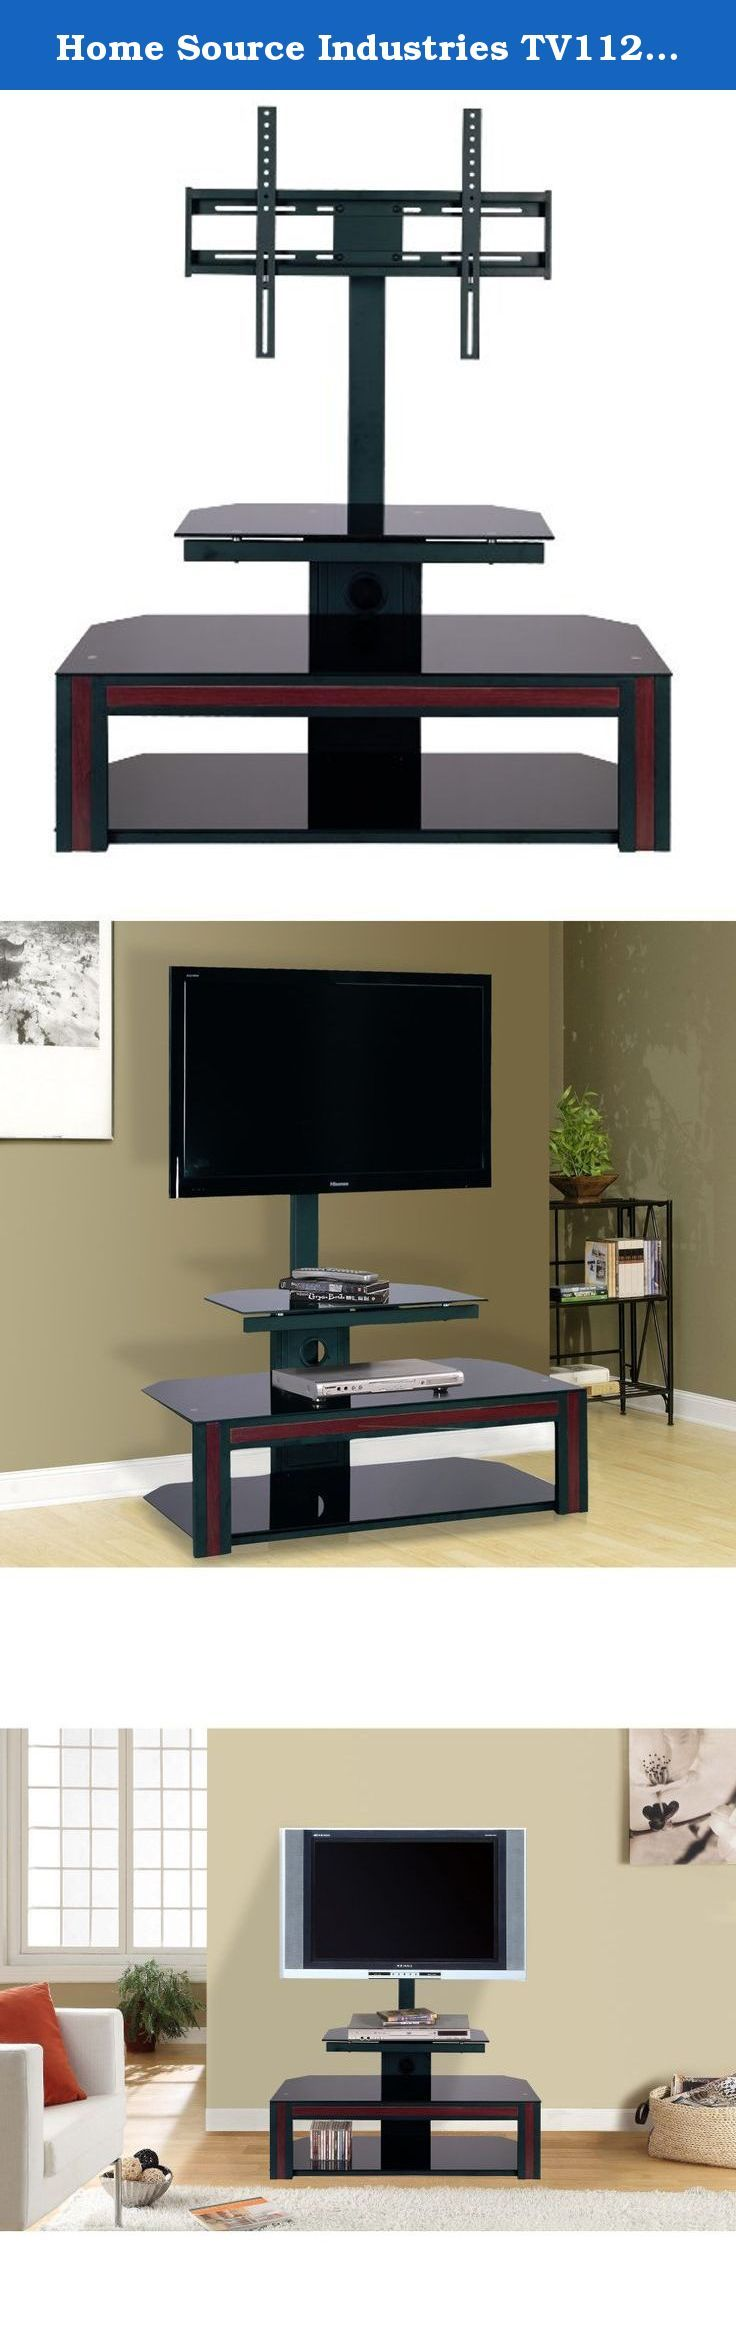 """Home Source Industries TV11207 Modern TV Stand with Mount and Shelving for Components, Black. This TV Stand will display your flat-panel plasma or LCD television in style while integrating into your modern decor. Designed to accommodate televisions up to 55"""", the TV stand features a strong metal mount and wood- highlighted shelves. The shelving units complement a modern home decor, and they also allow for the storage and display of various entertainment accessories."""